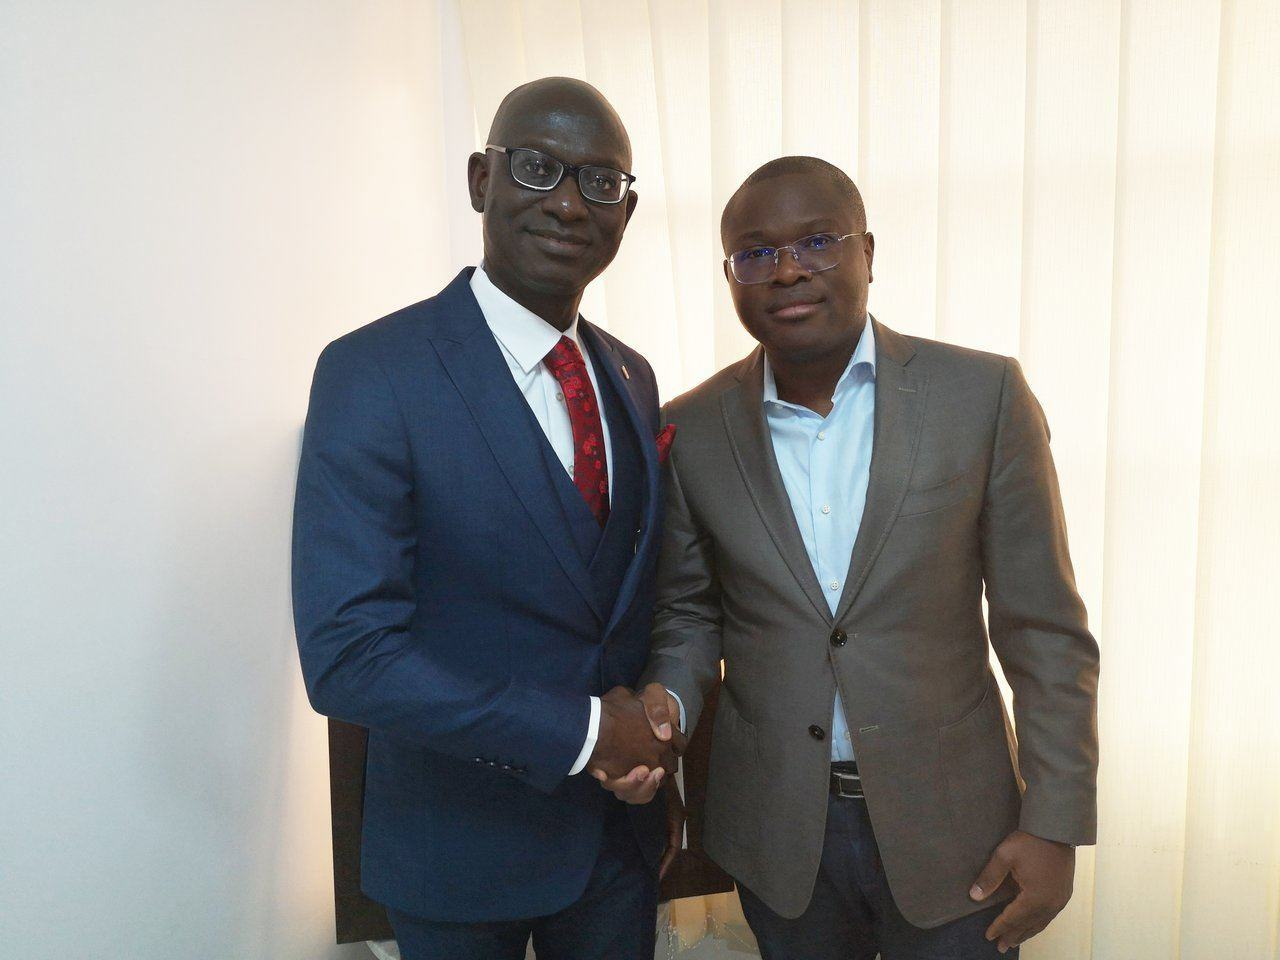 Gbenga Makinde UBA Benin Pays Courtesy visit officials of Benin Republic